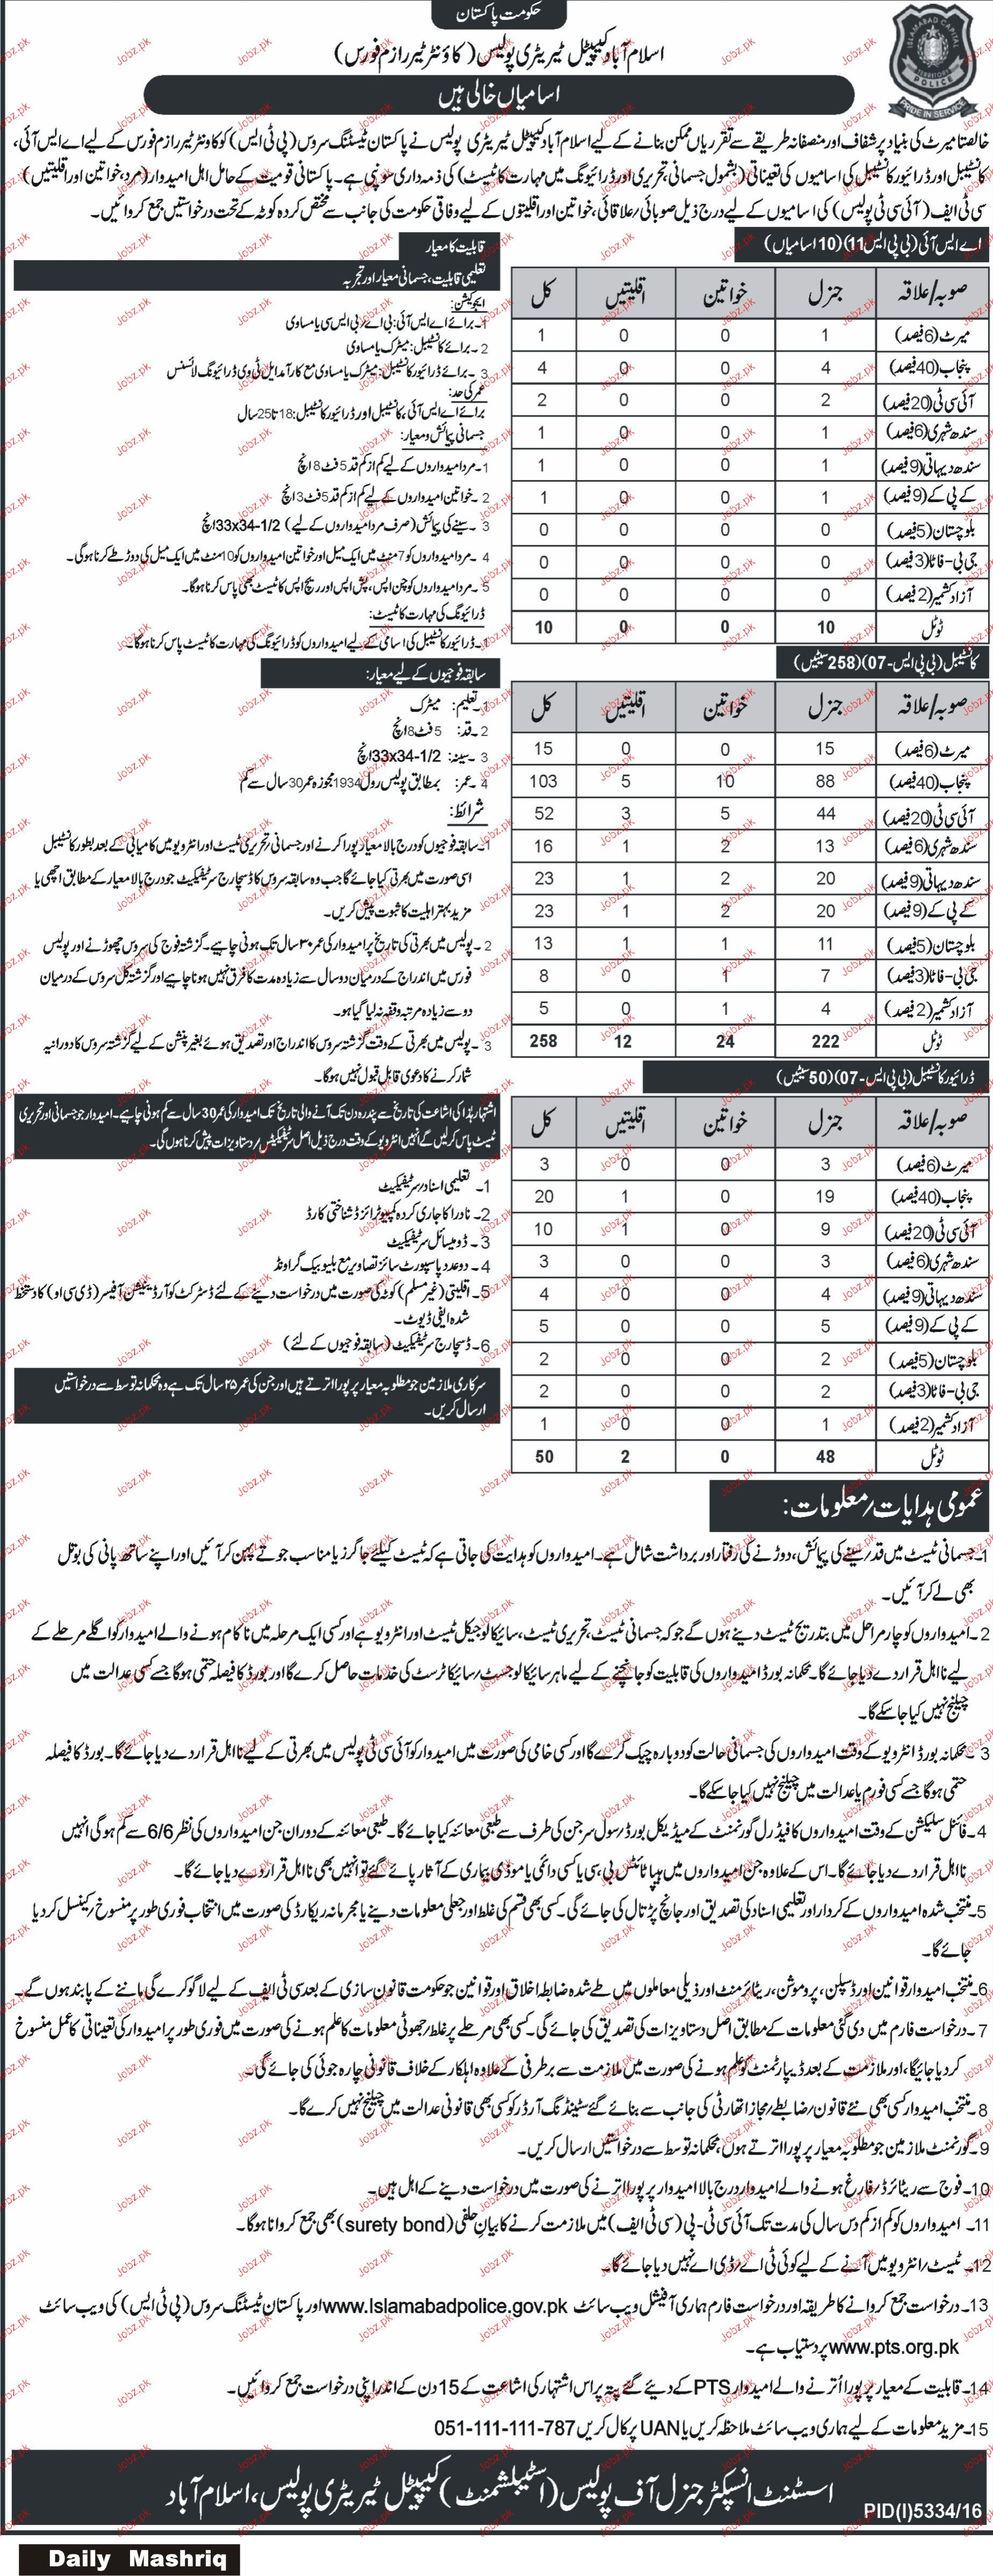 Recruitment of ASI, Constables in Islamabad Police